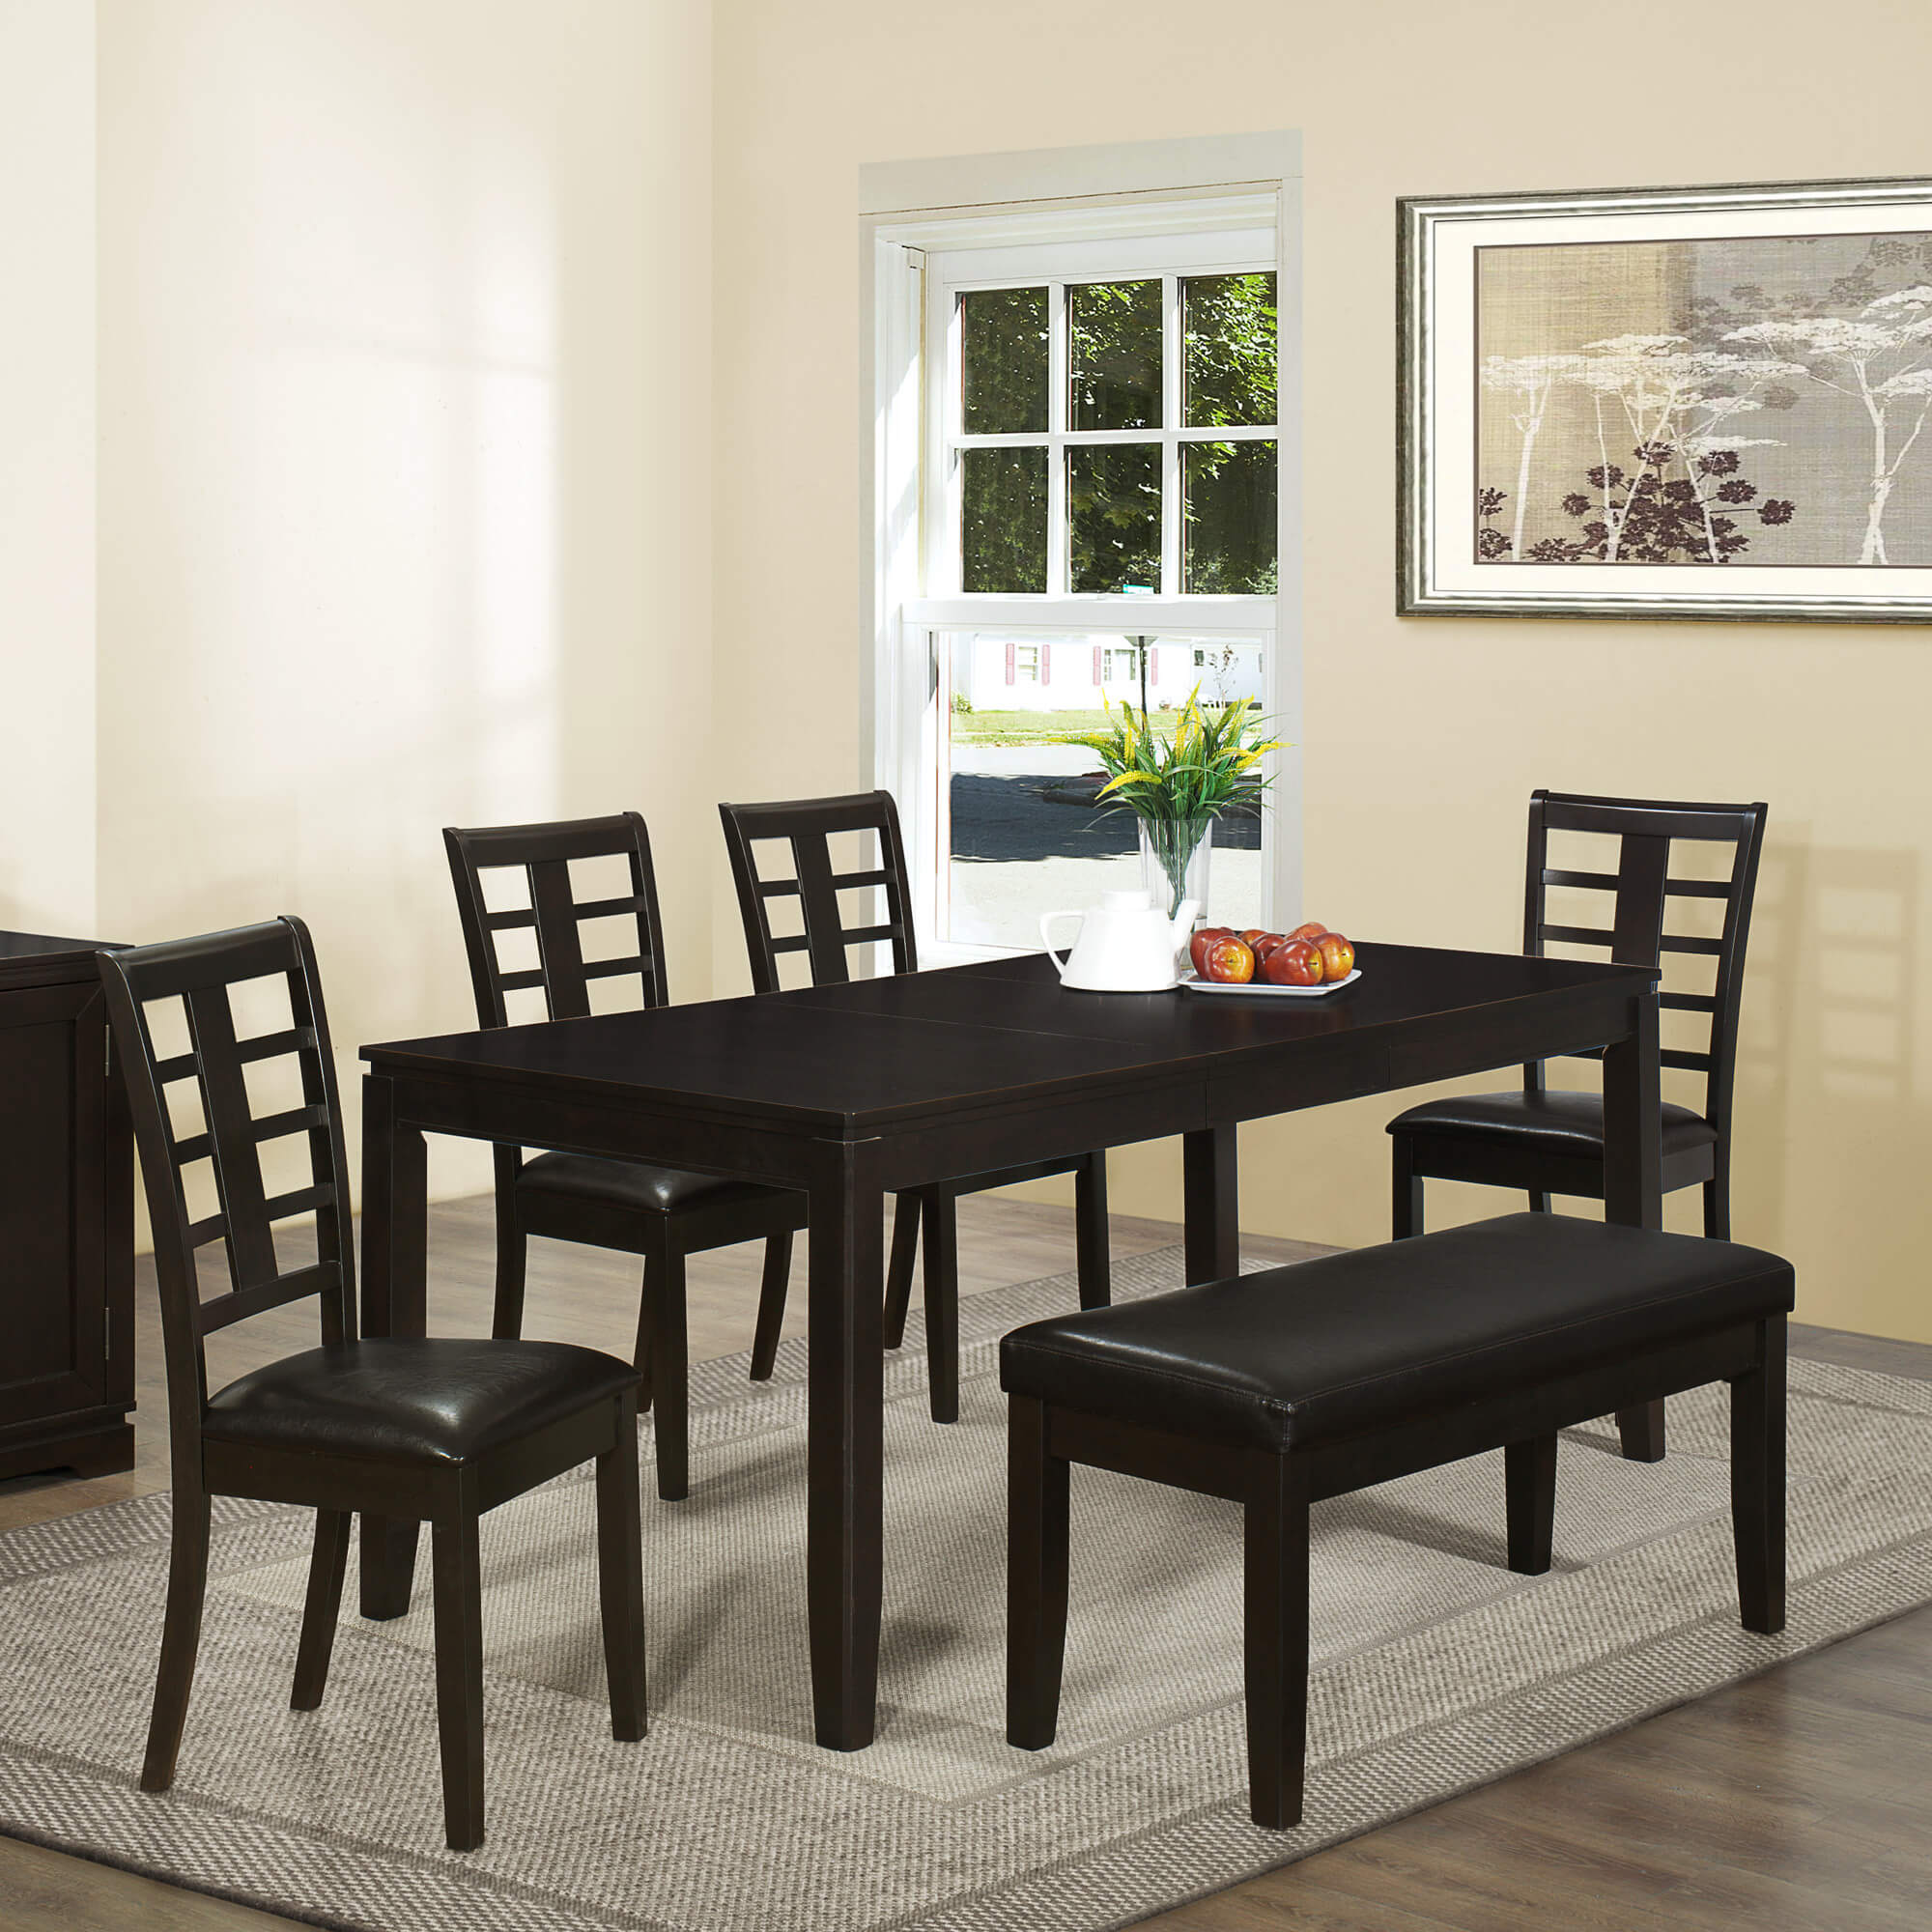 Contemporary Asian-inspired dining set with bench is a good size being able to accommodate : dining table sets with bench - pezcame.com